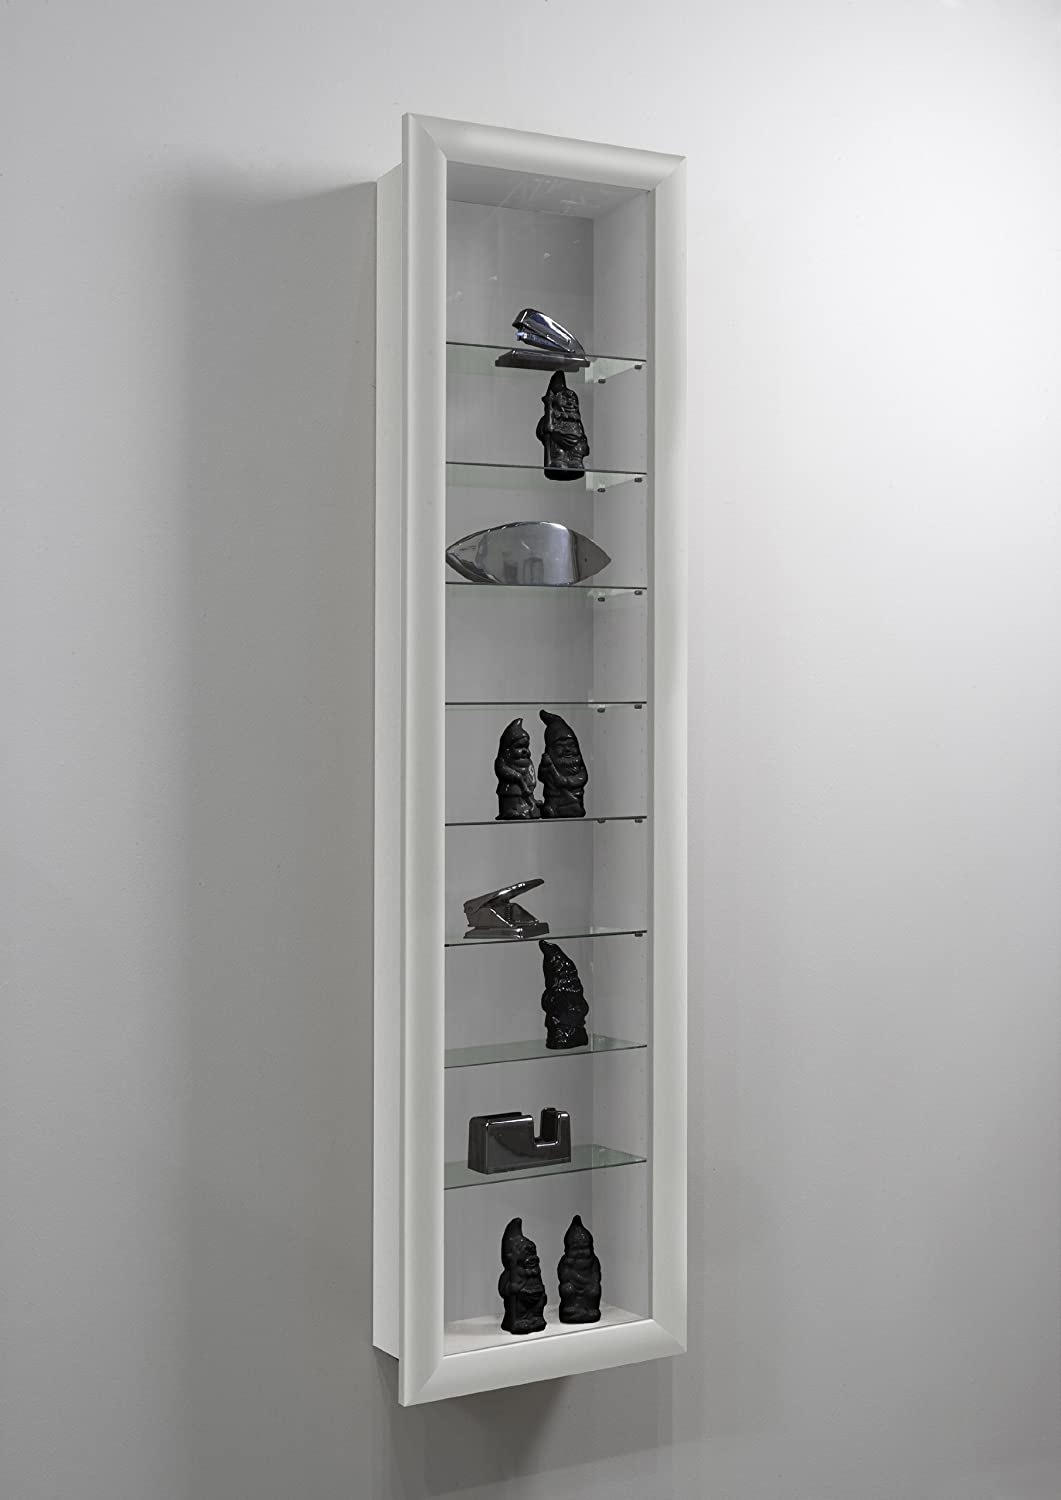 LHS SHOWCASE II Wall Mounted Glass Display Case Cabinet Unit Glass Shelves in White Colour